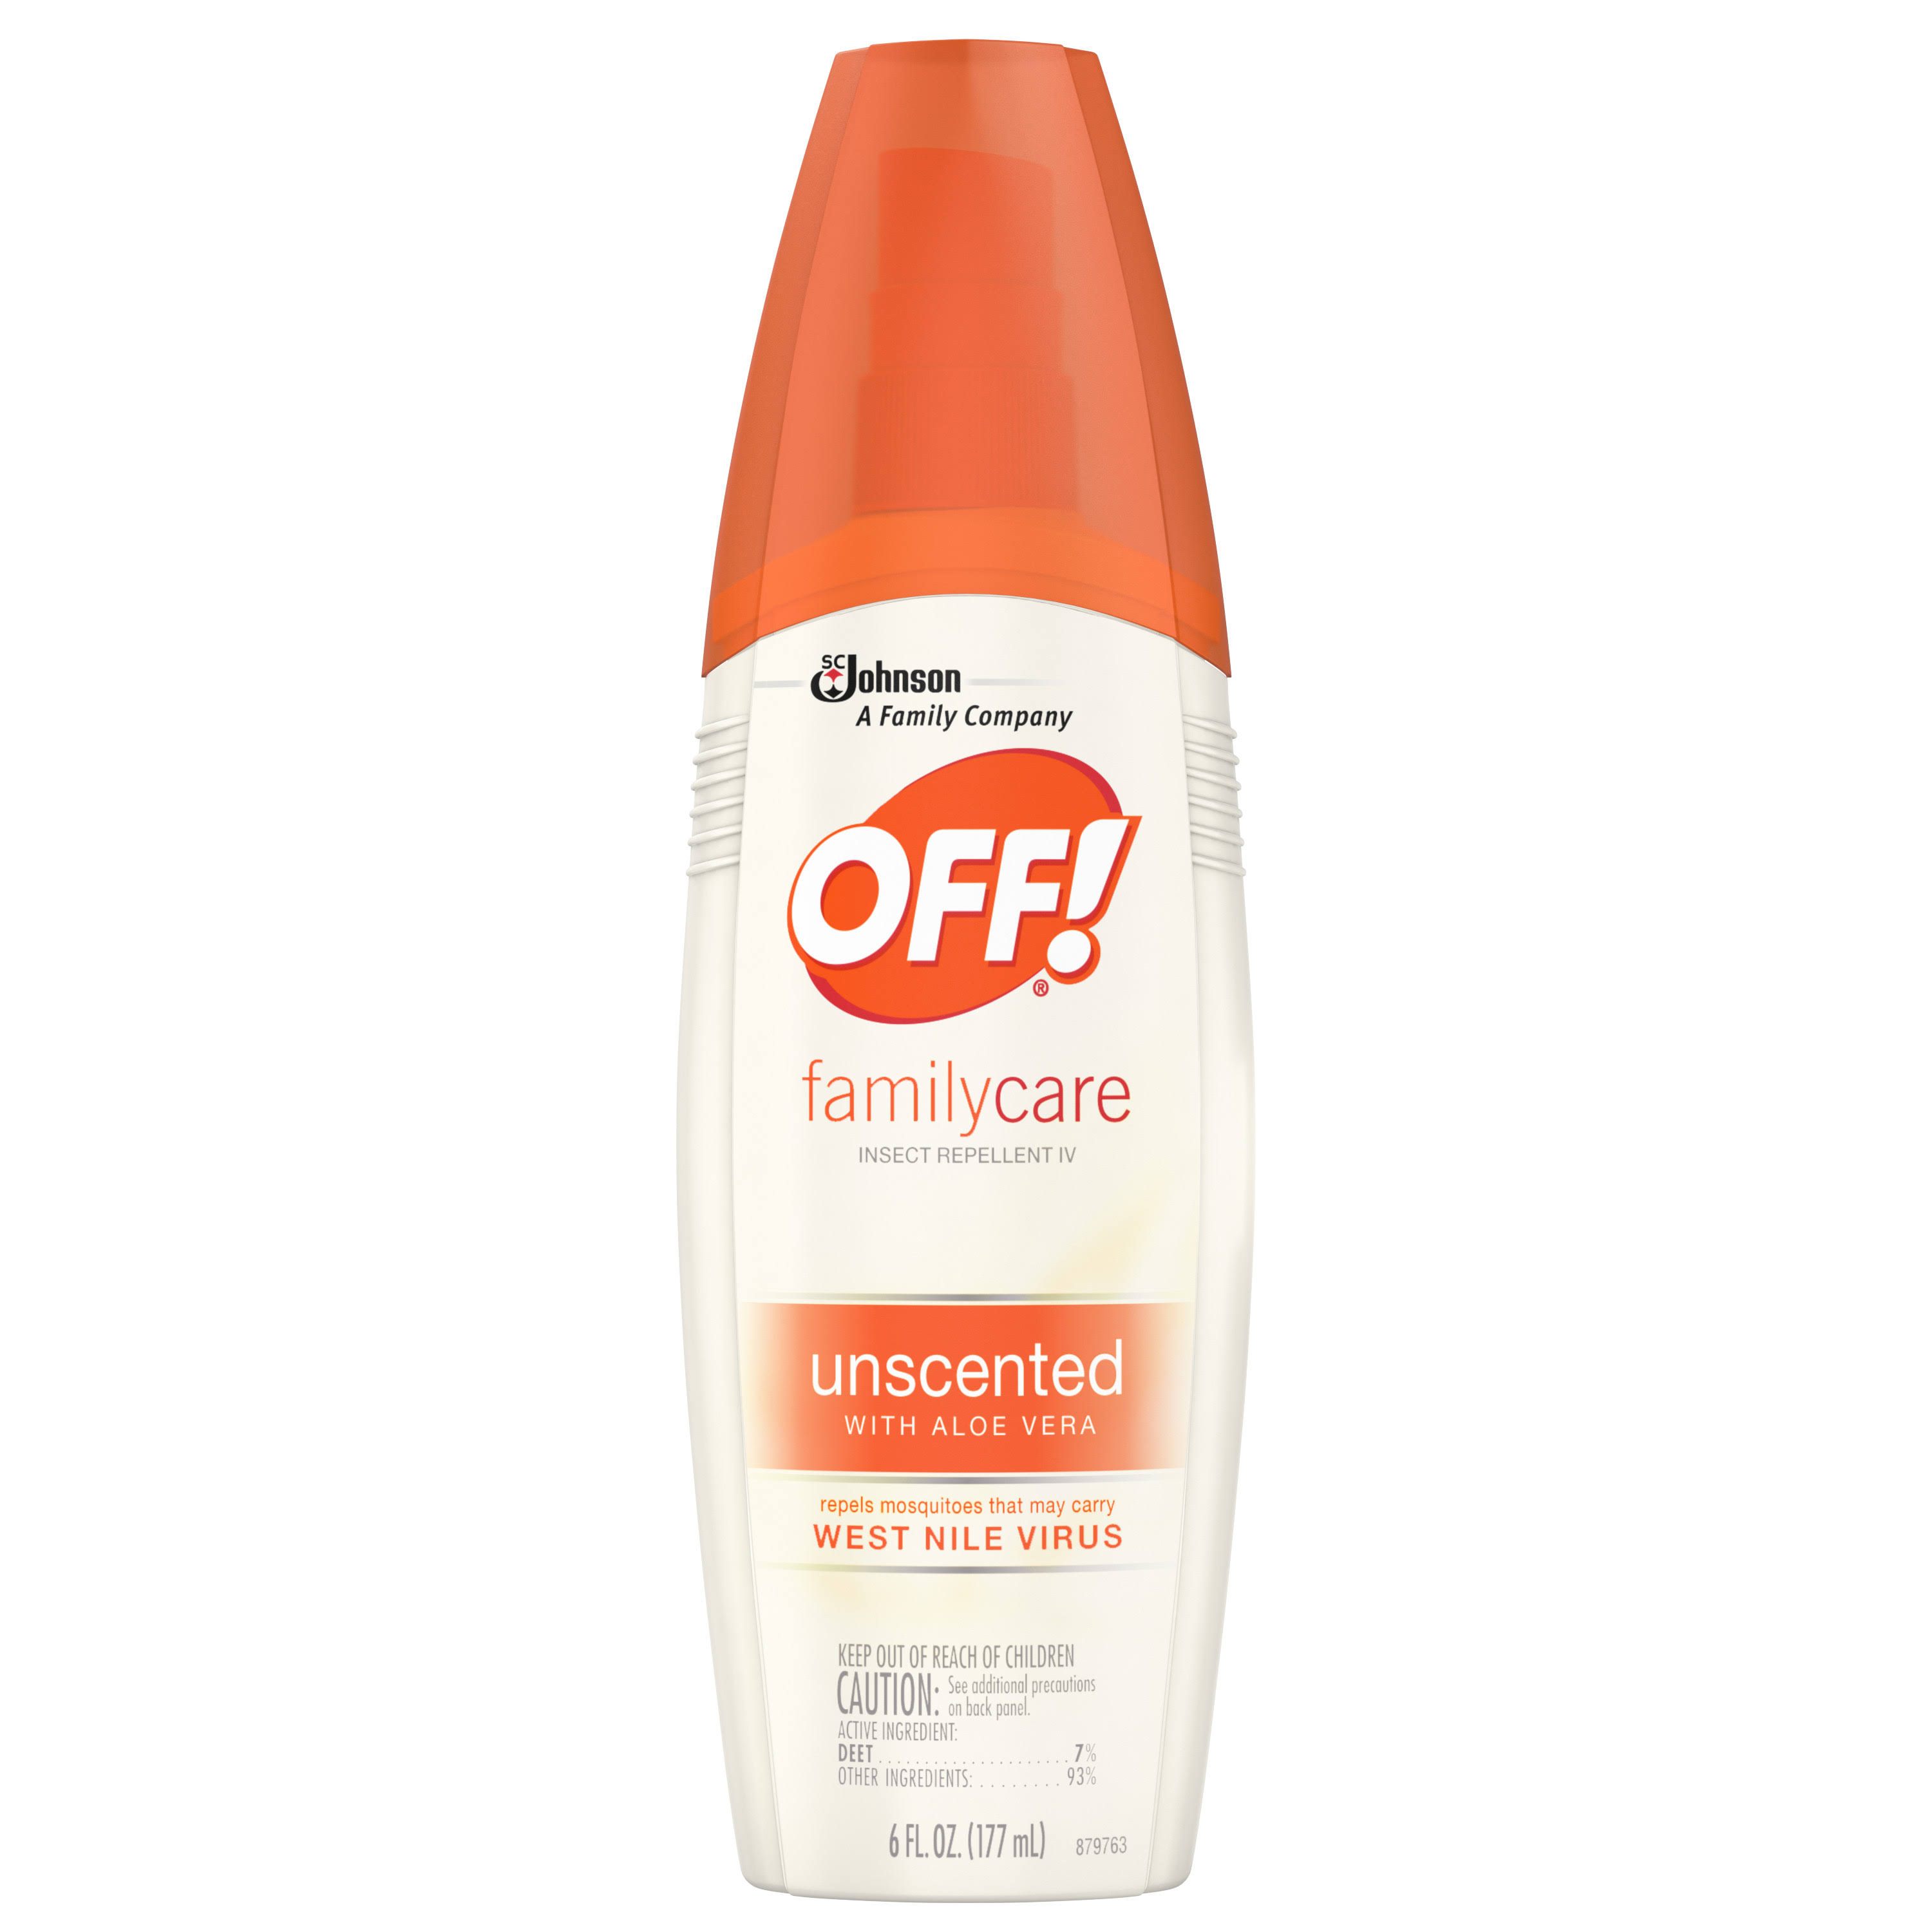 Off! Familycare Insect Repellent - Unscented, 6oz